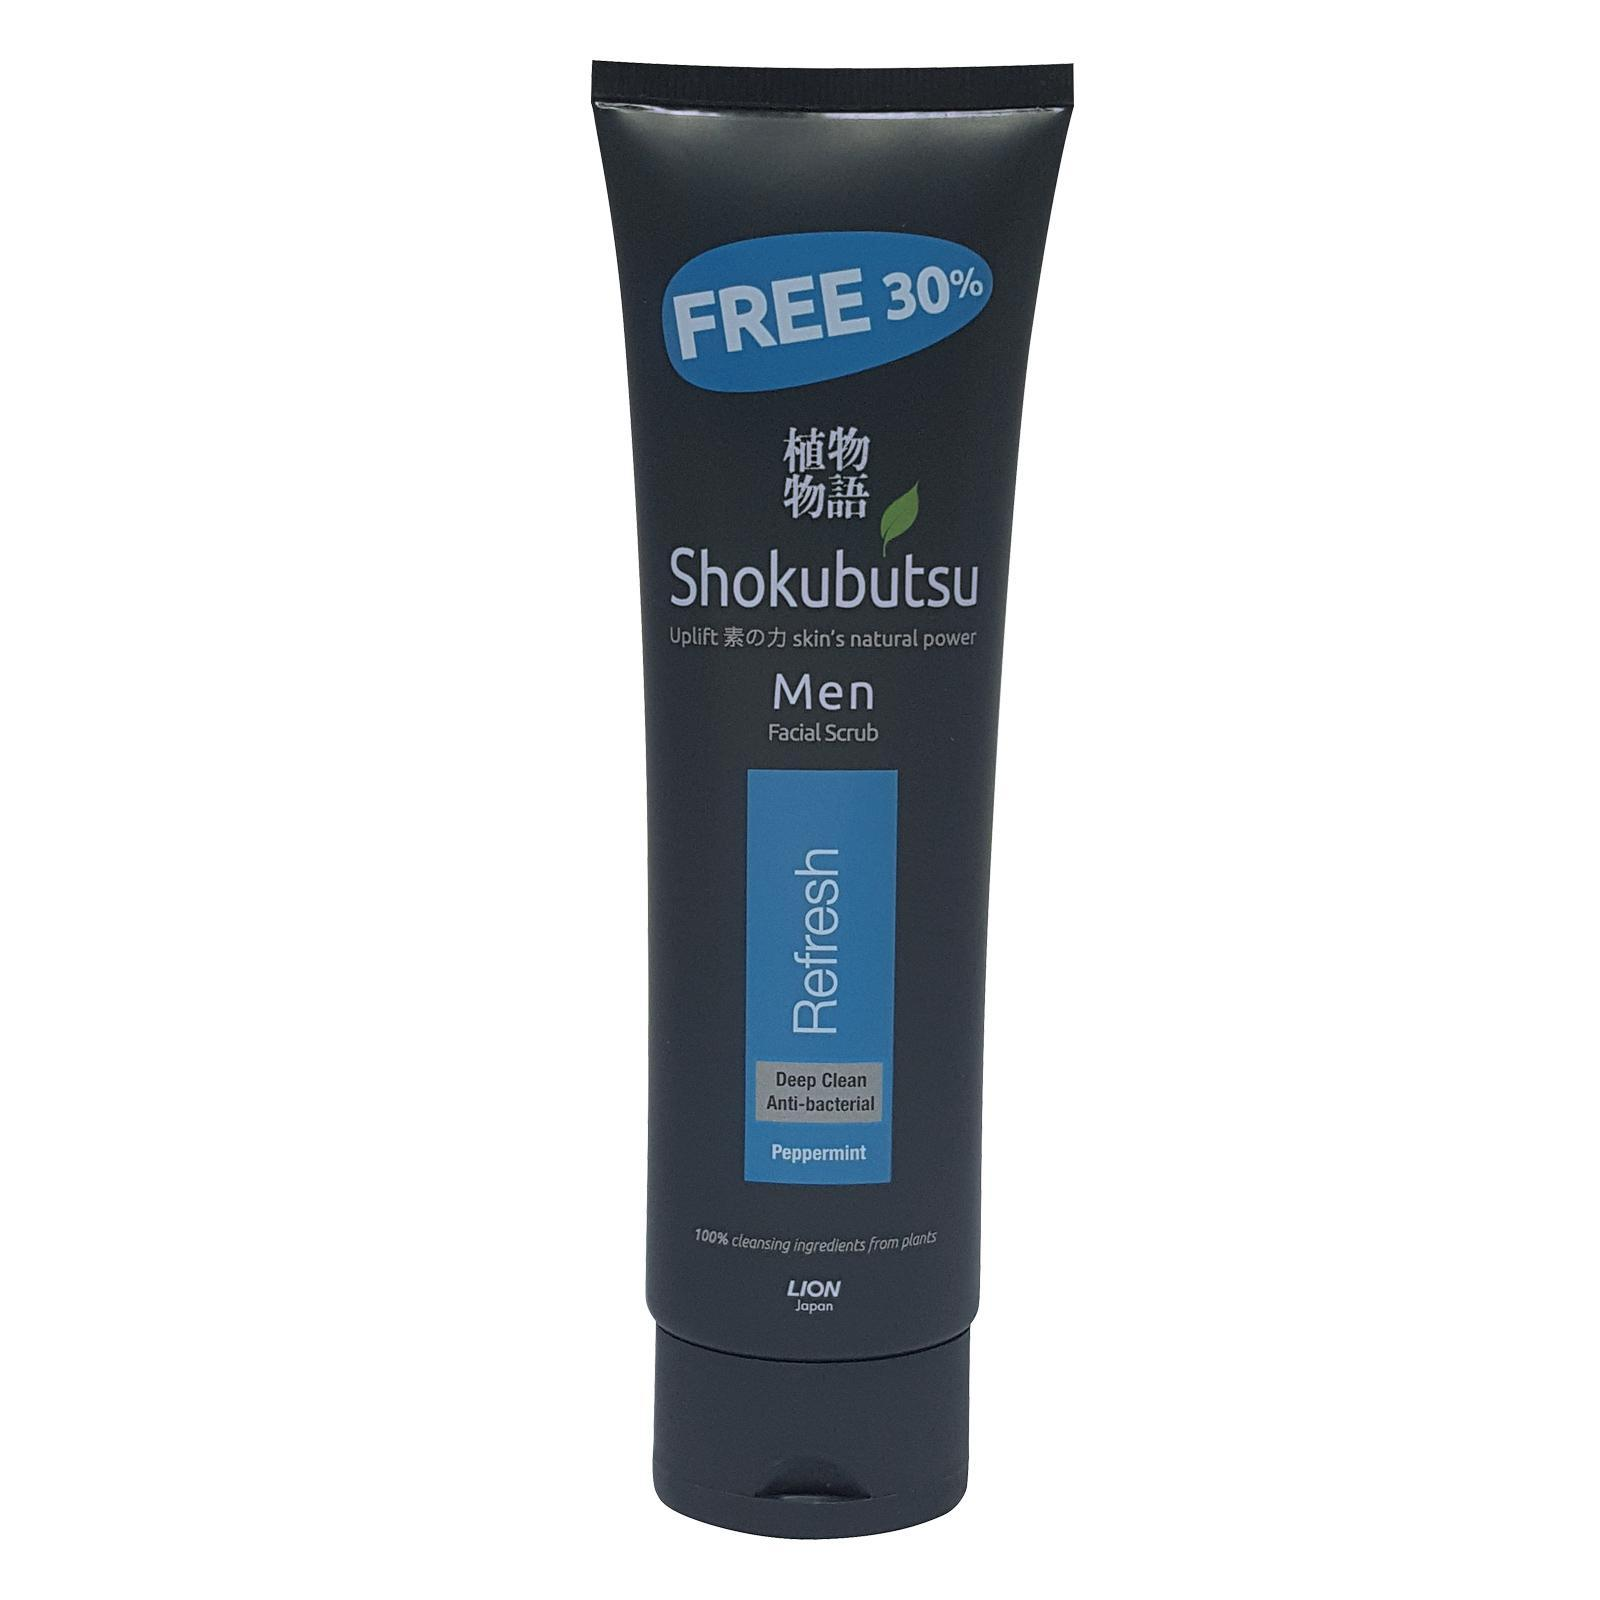 Shokubutsu Men Facial Foam And Scrub Extra 30% - Refresh